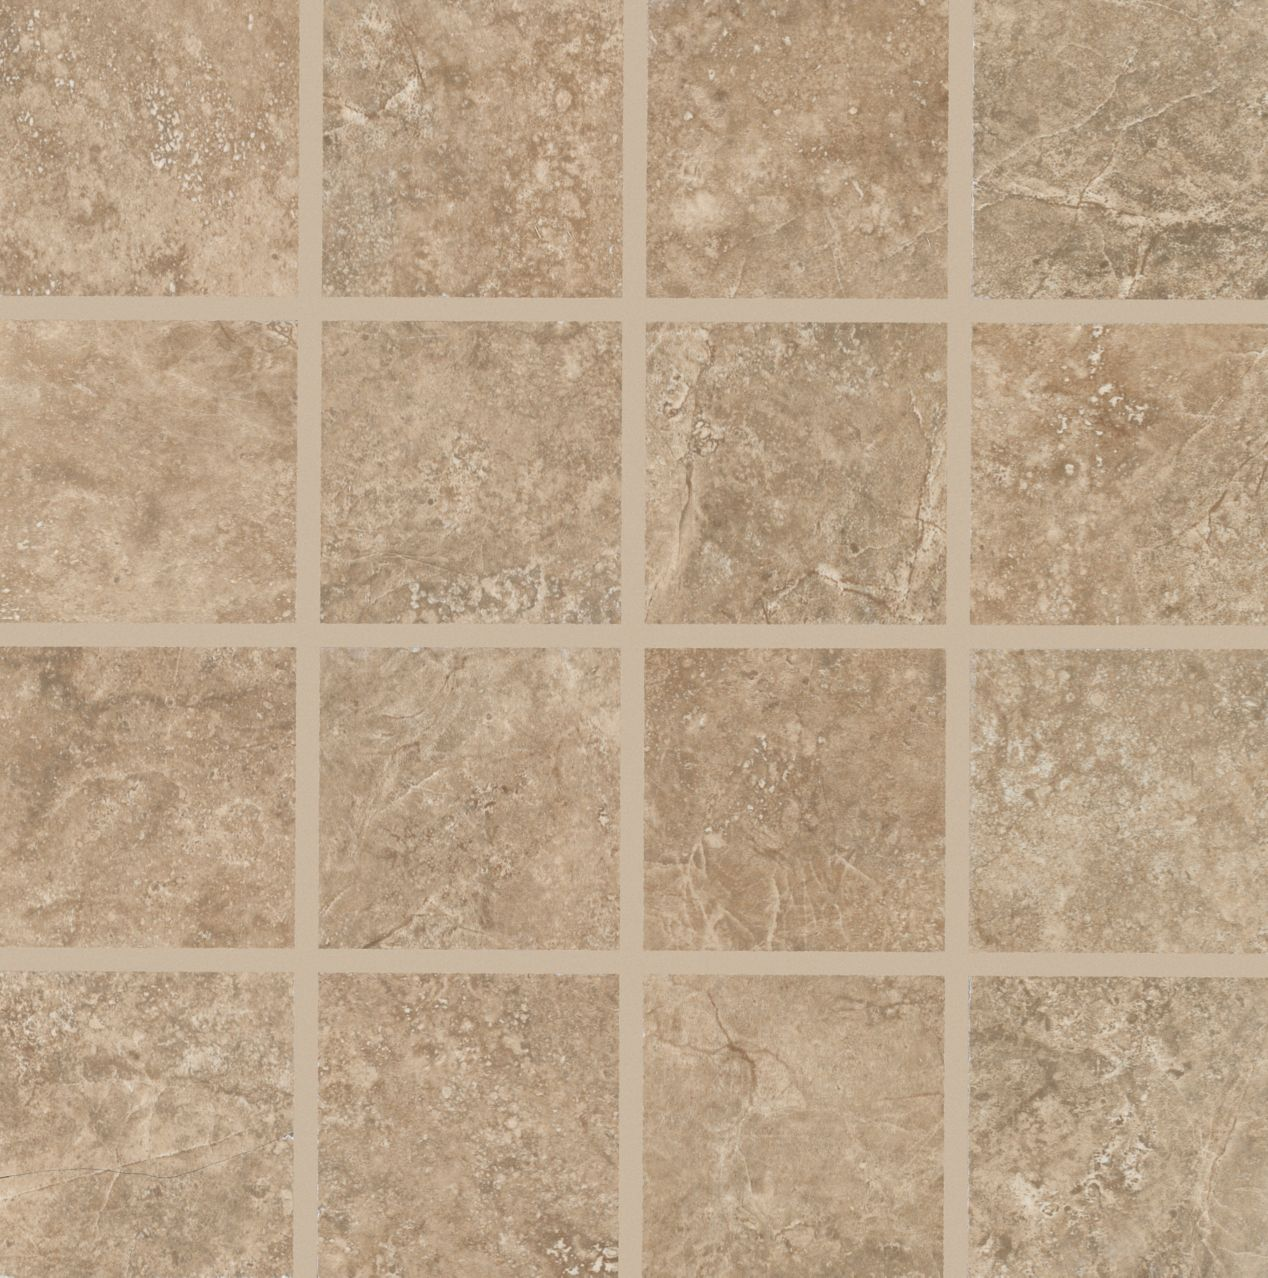 Mclean Floor Tile Spiced Noce